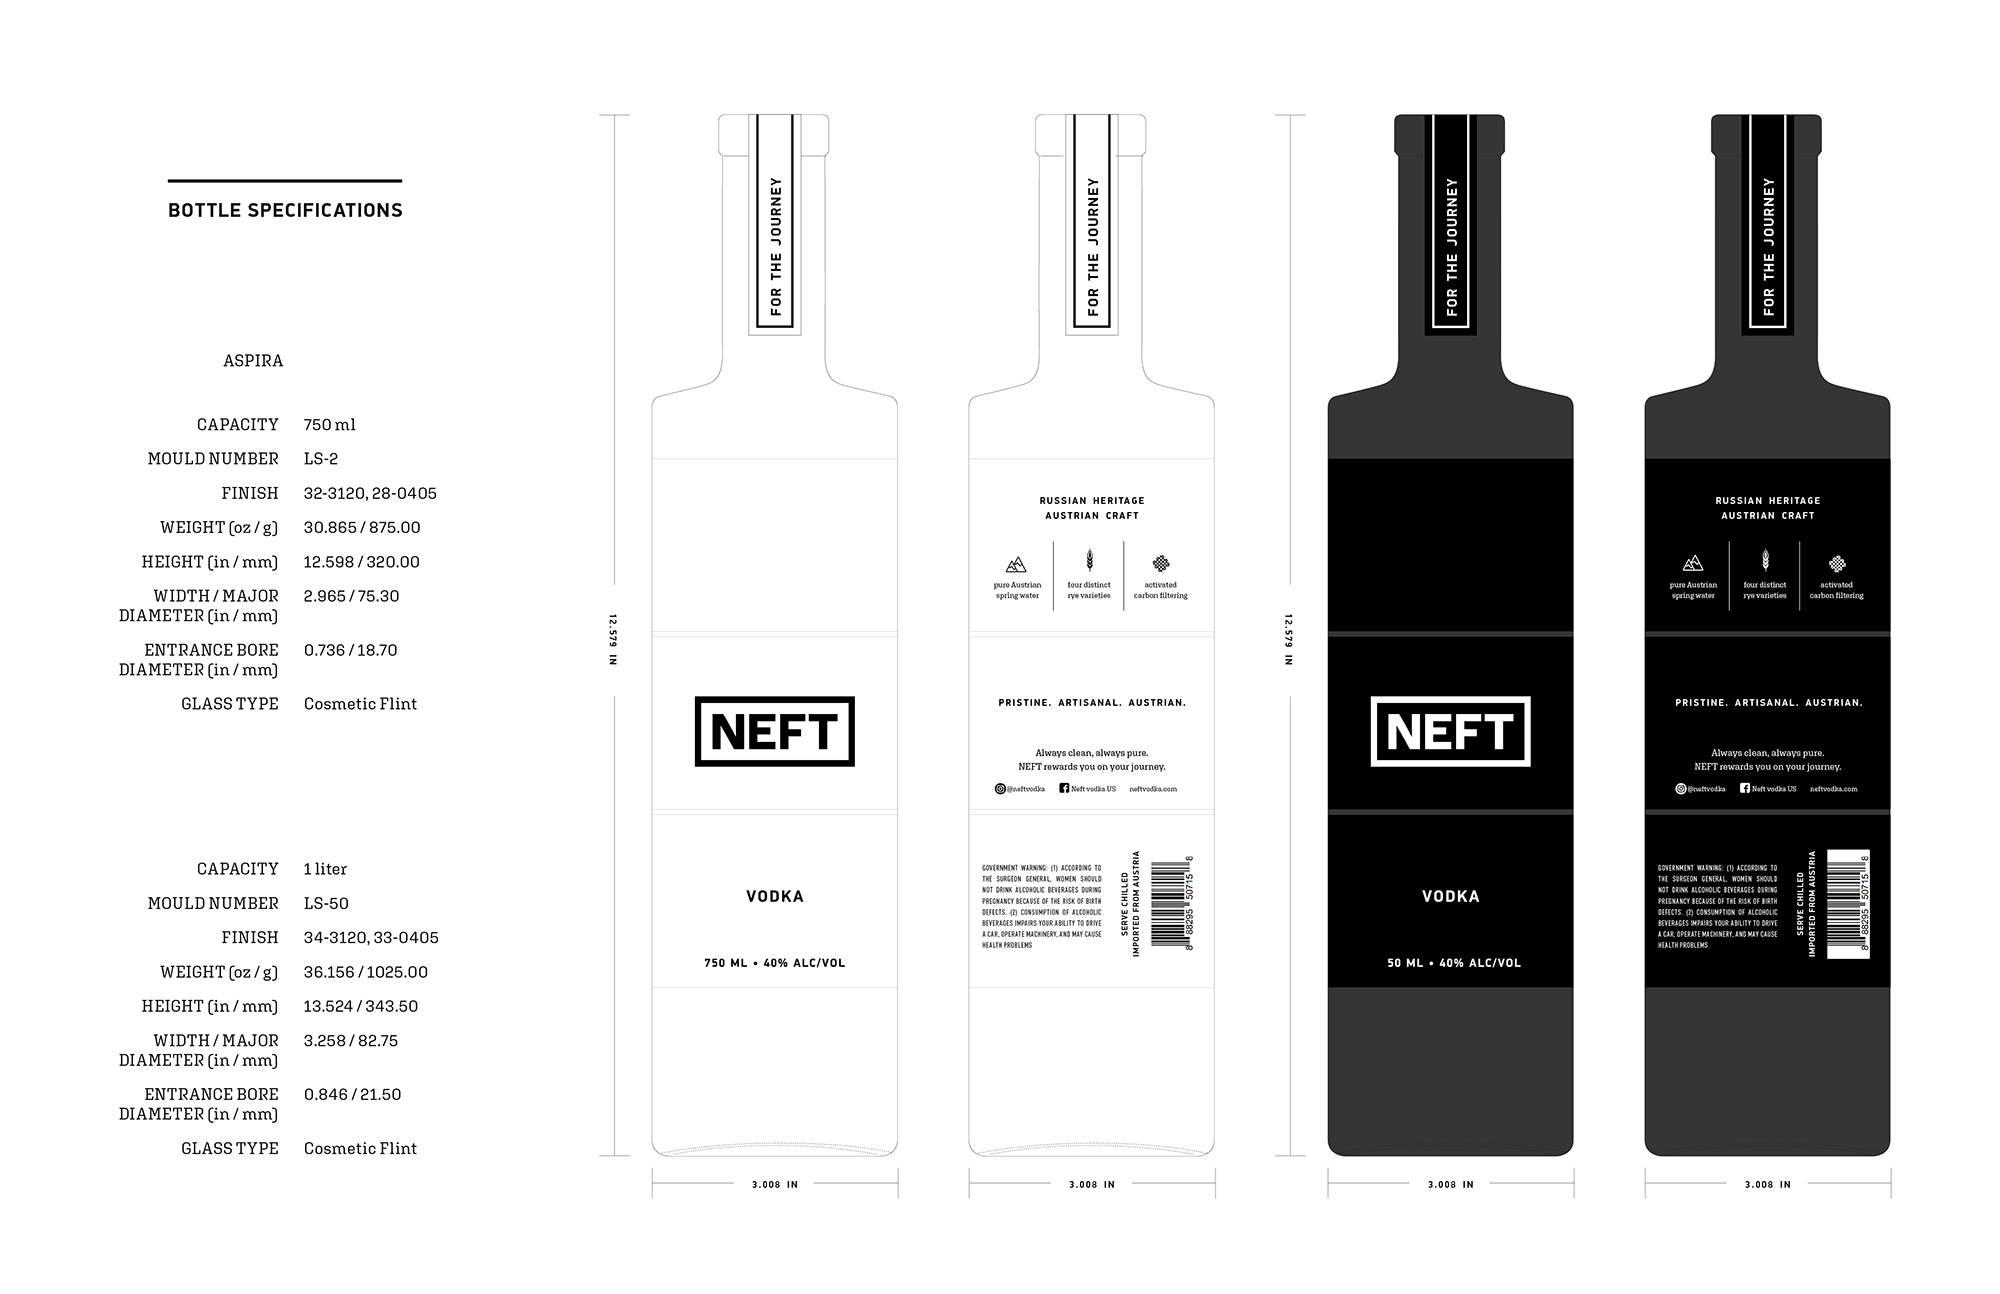 Bottle specifications of the NEFT Vodka bottle design